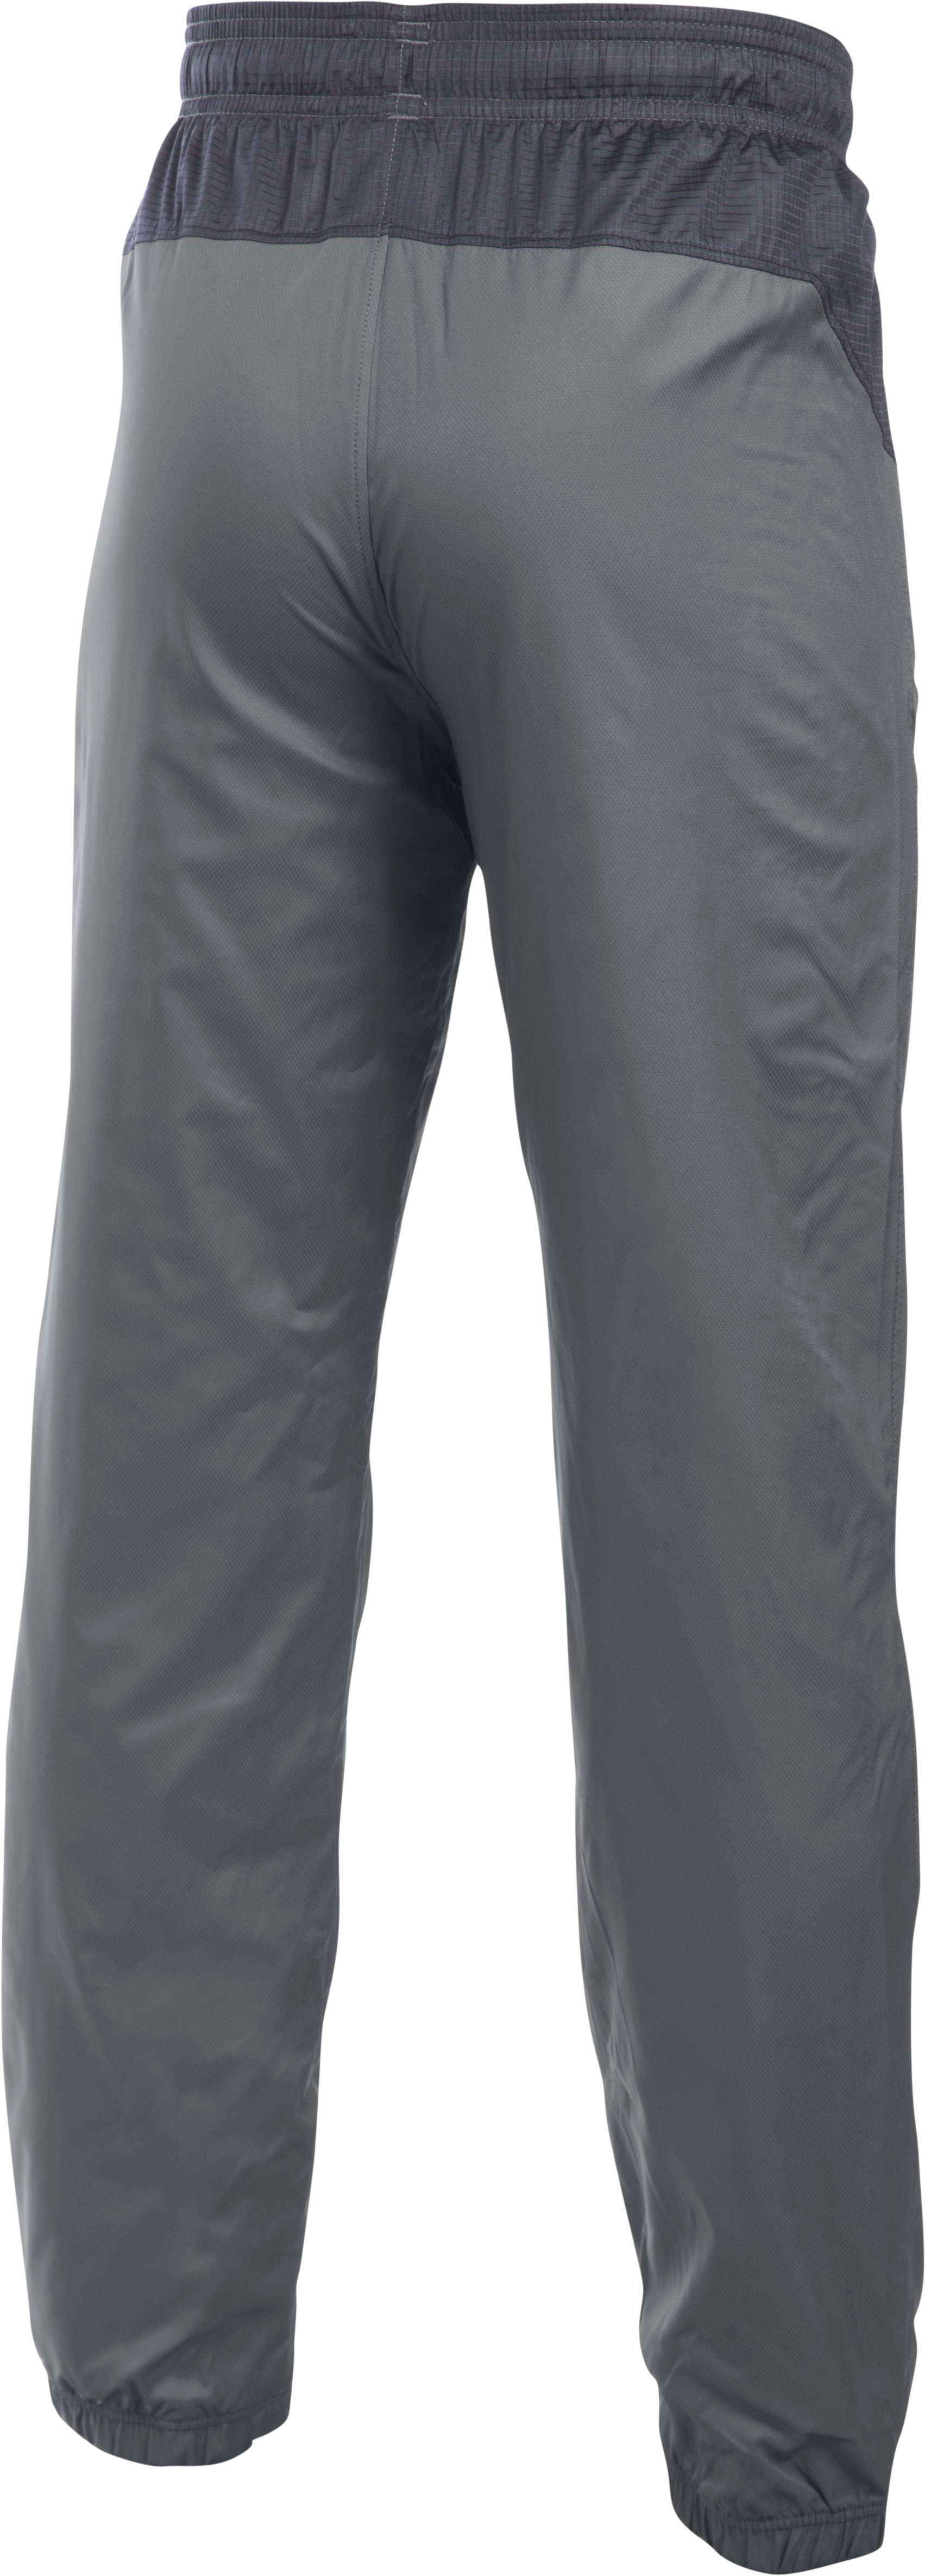 Boys' UA Storm Evaporate Woven Pants, Graphite, undefined